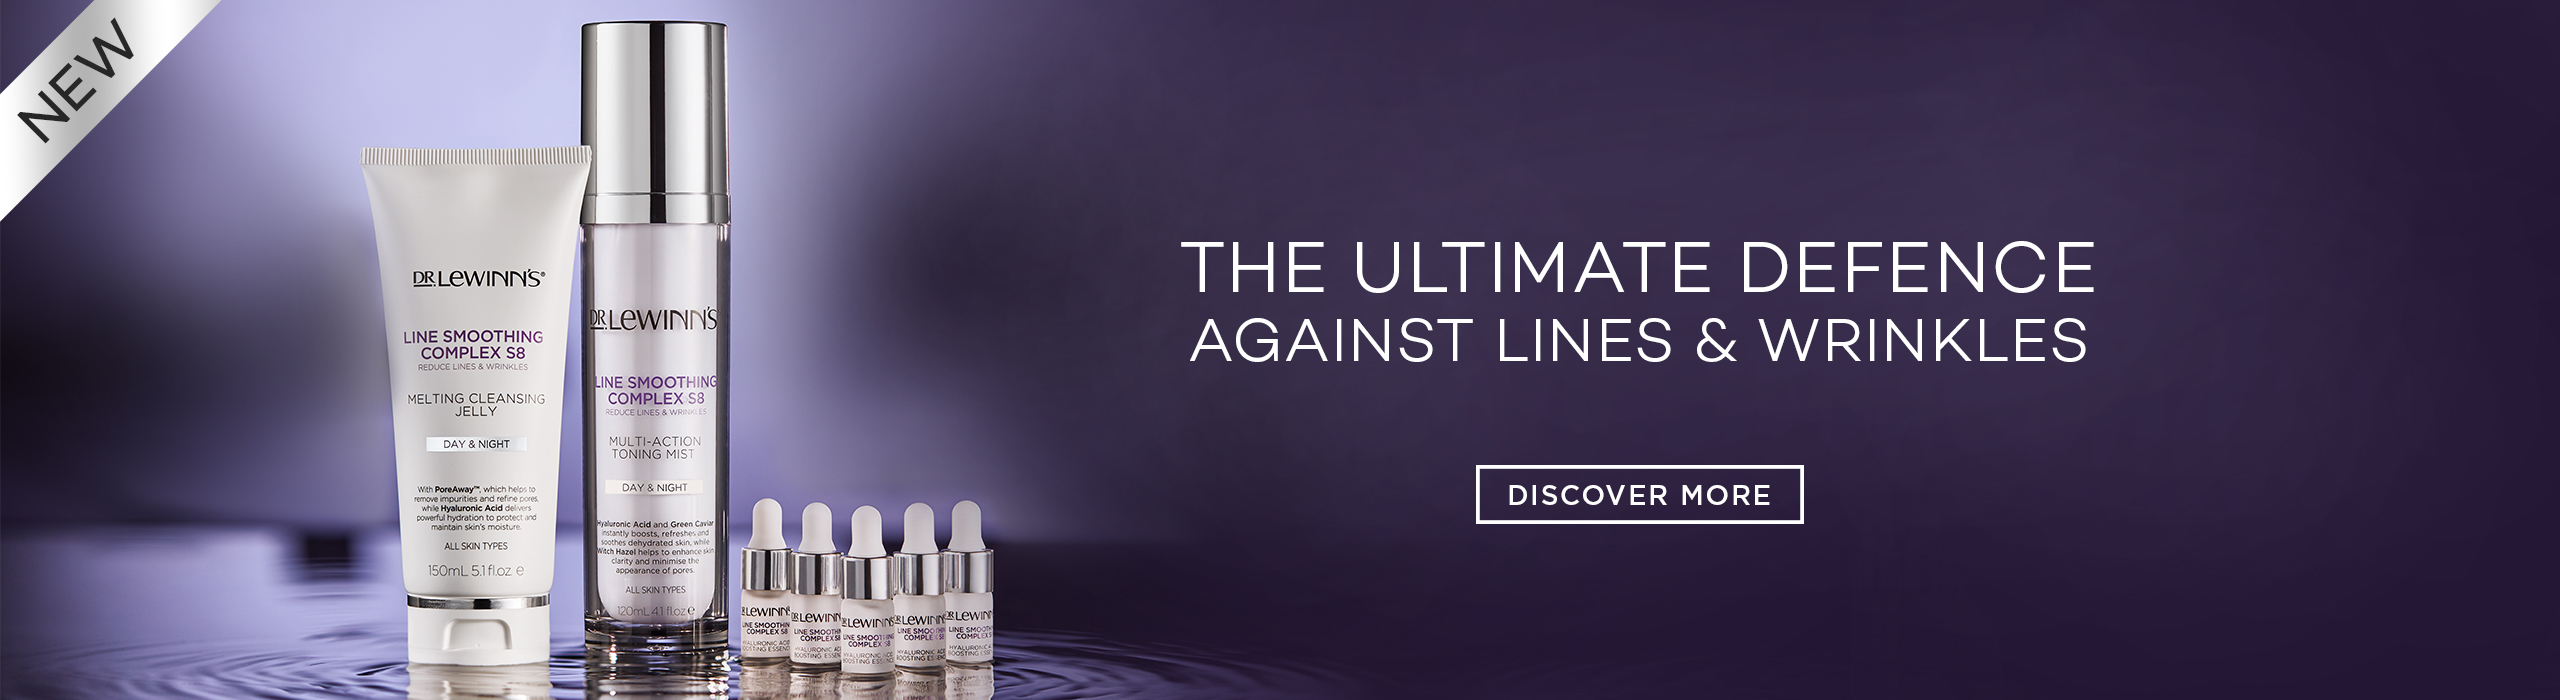 The Ultimate Defence Against Lines and Wrinkles